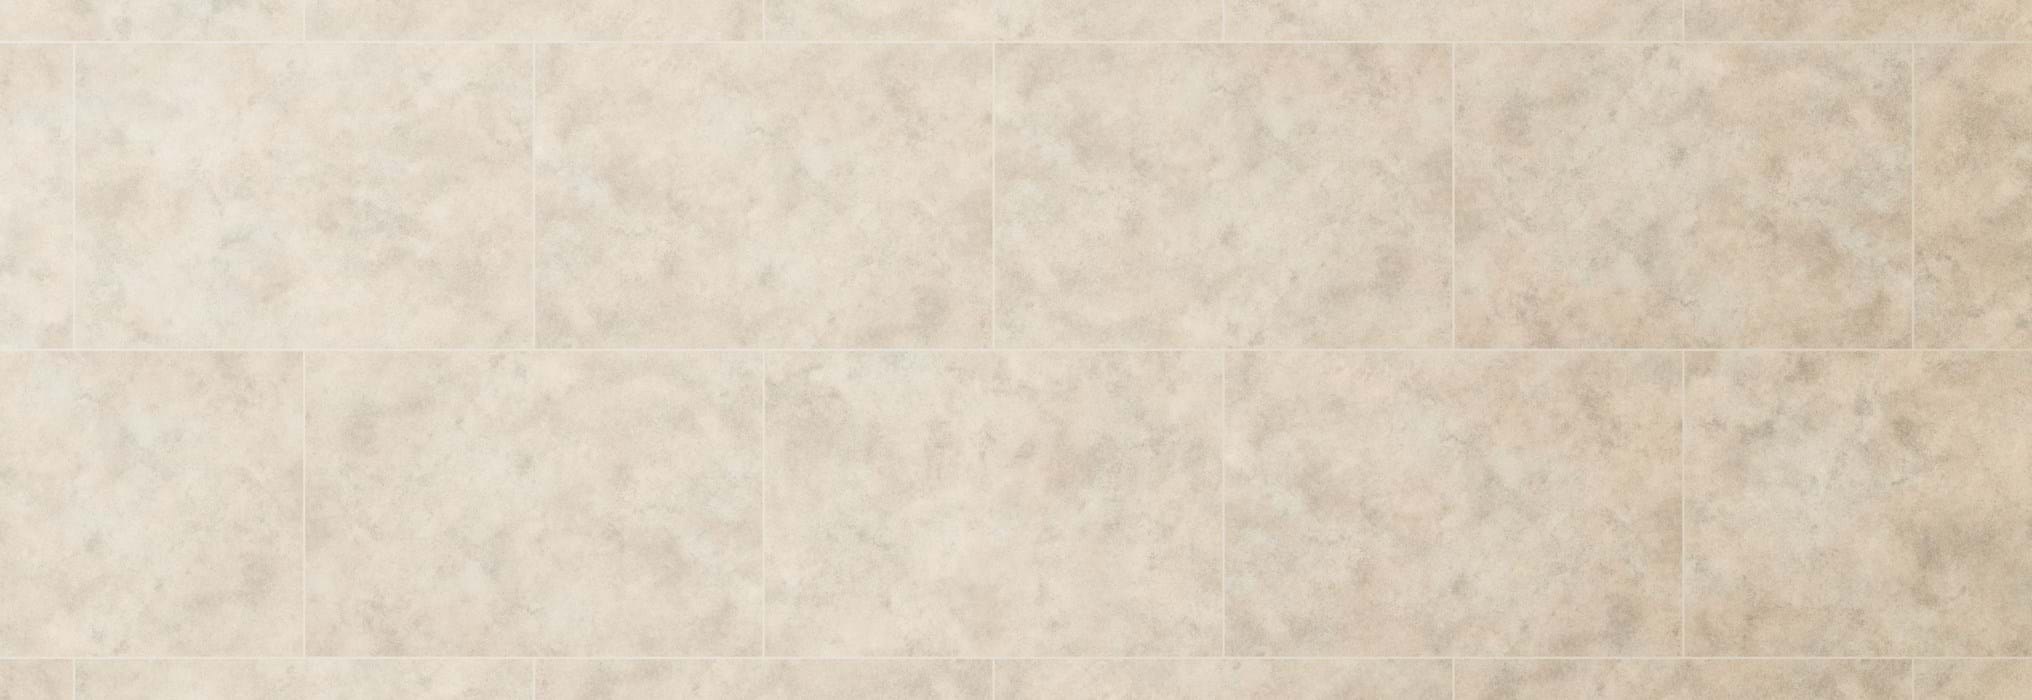 Amtico International: Limestone Cool - AM5S1561